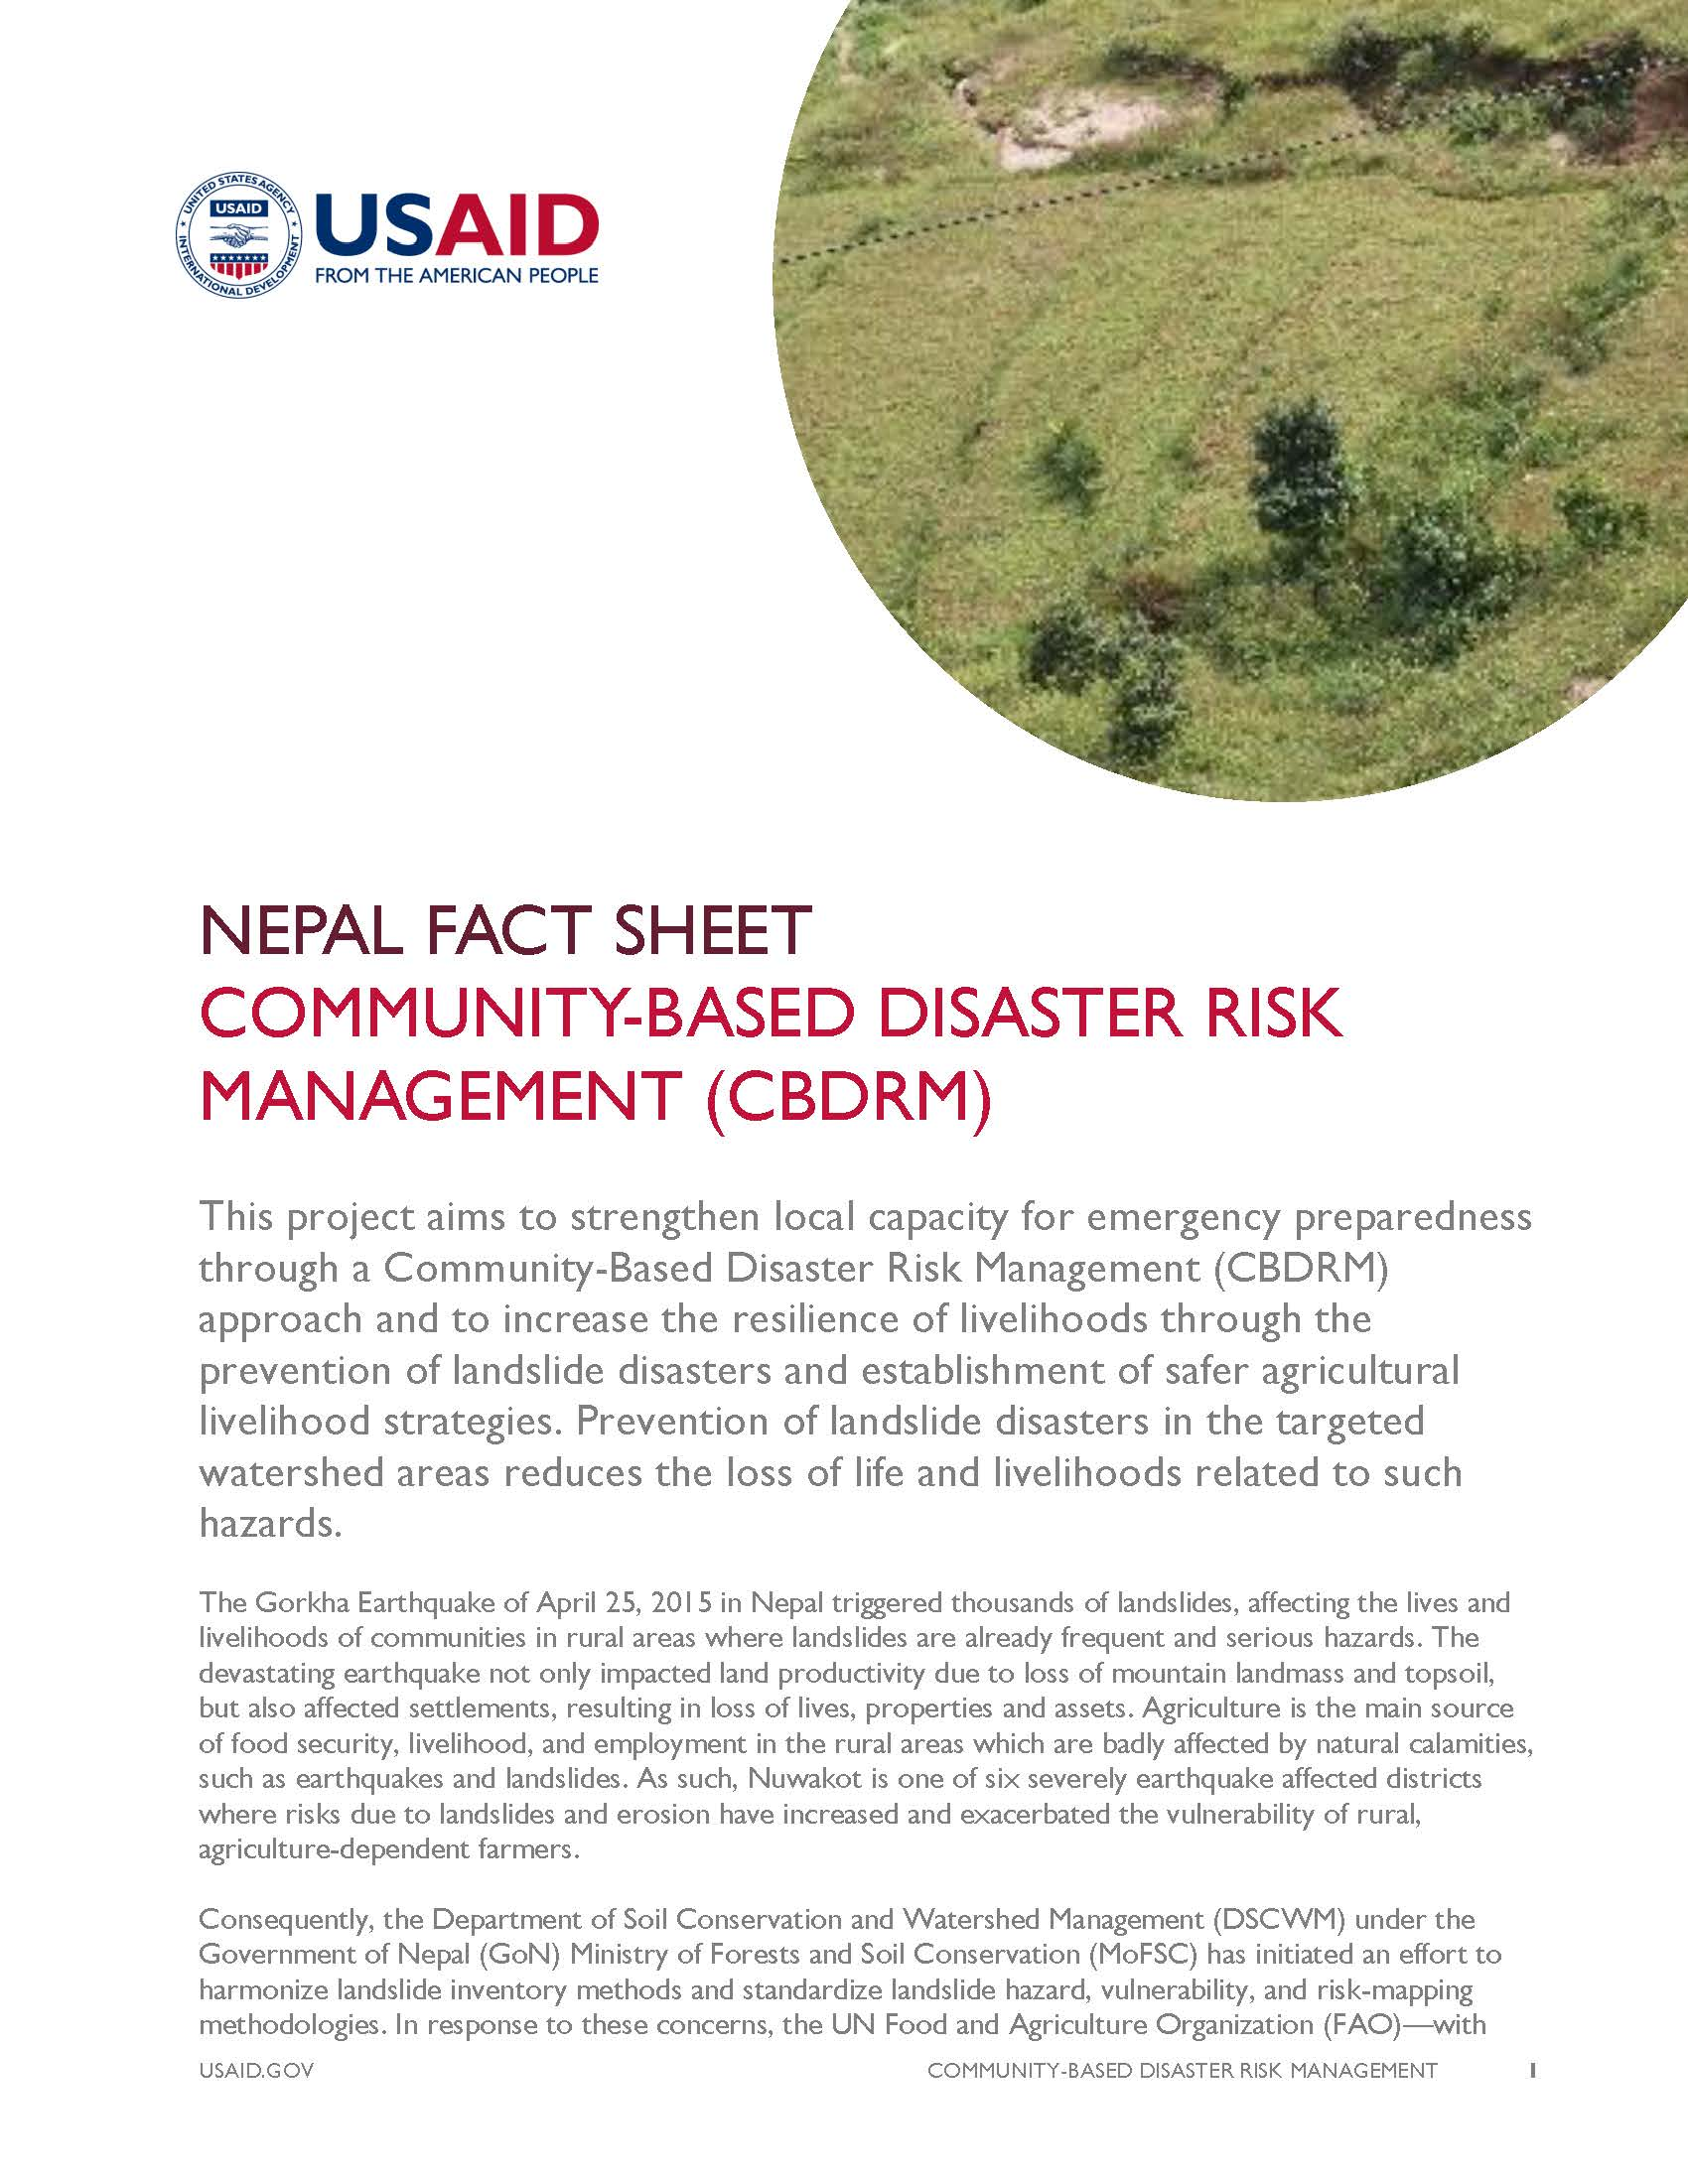 Fact Sheet:COMMUNITY-BASED DISASTER RISK MANAGEMENT (CBDRM)